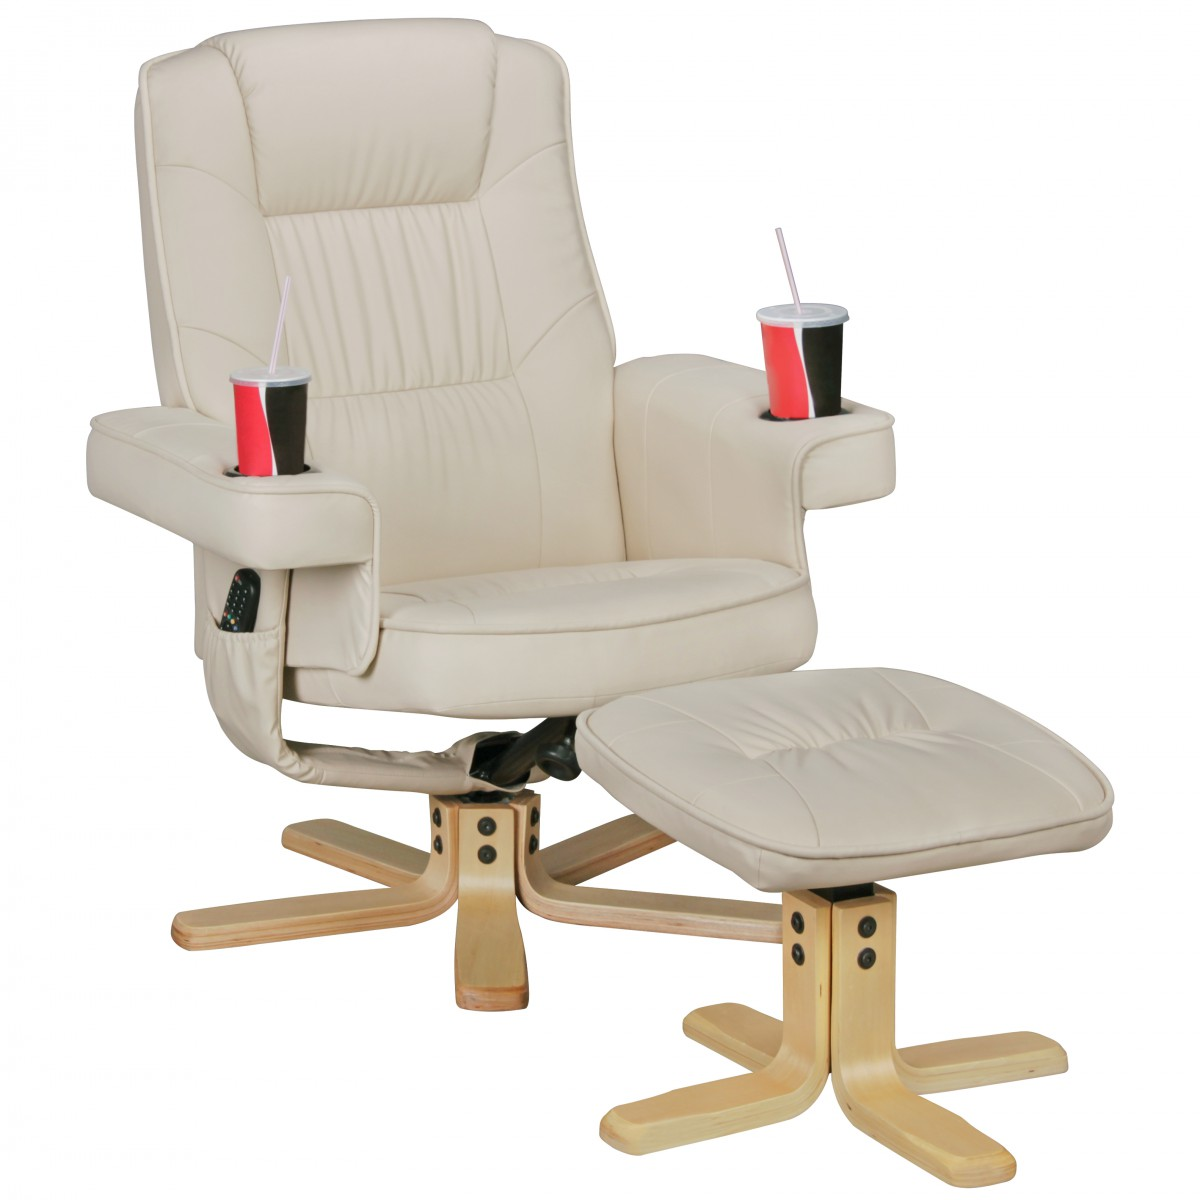 Amstyle Duo Relaxsessel Fernsehsessel Tv Sessel Mit Hocker